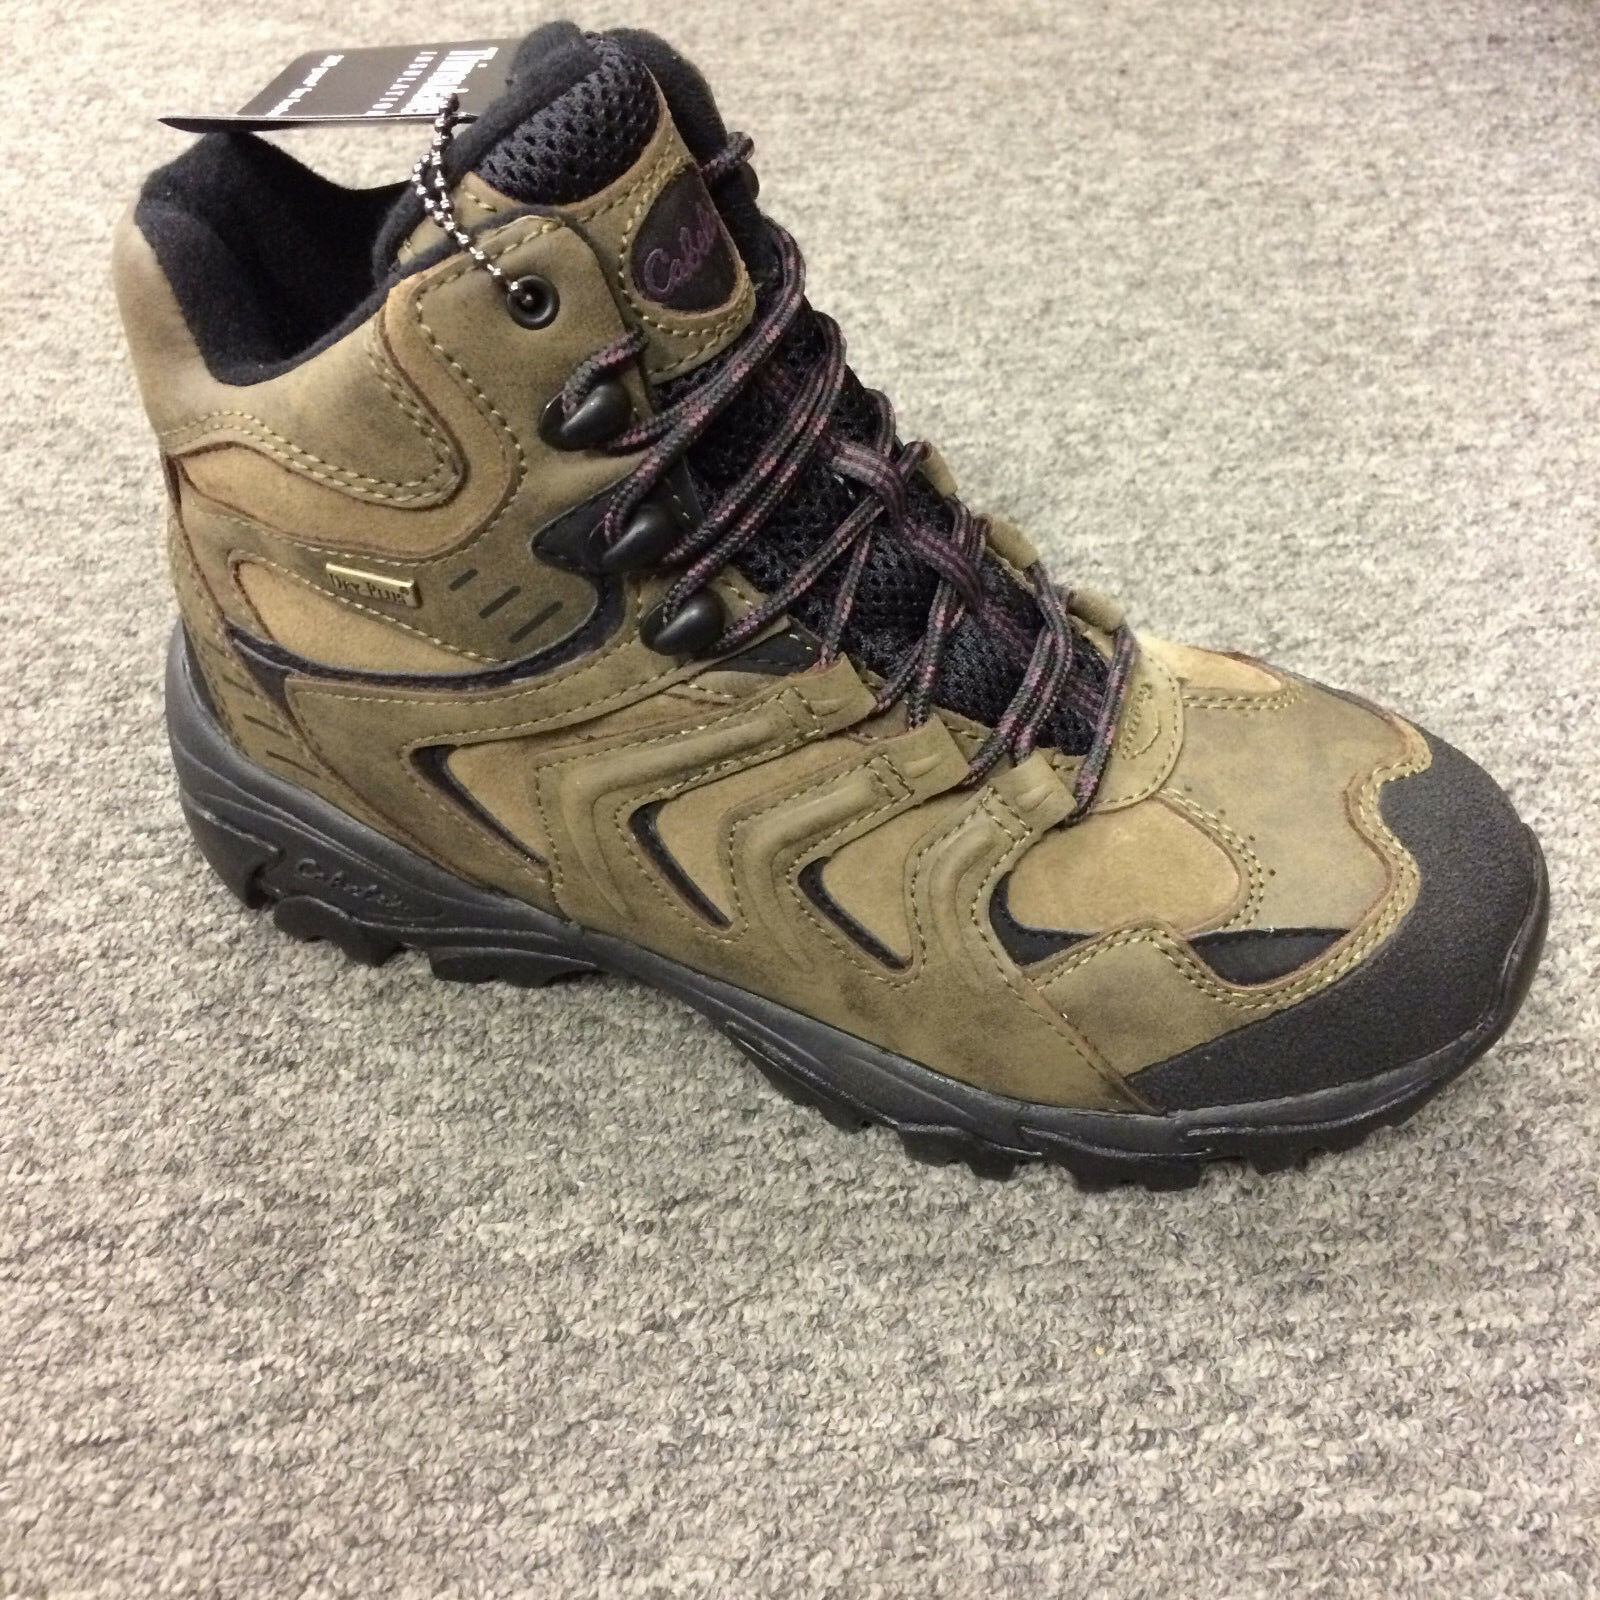 Cabelas Womens Winter Peak Pac Boots Olive Brown Size 9M 813630 NEW